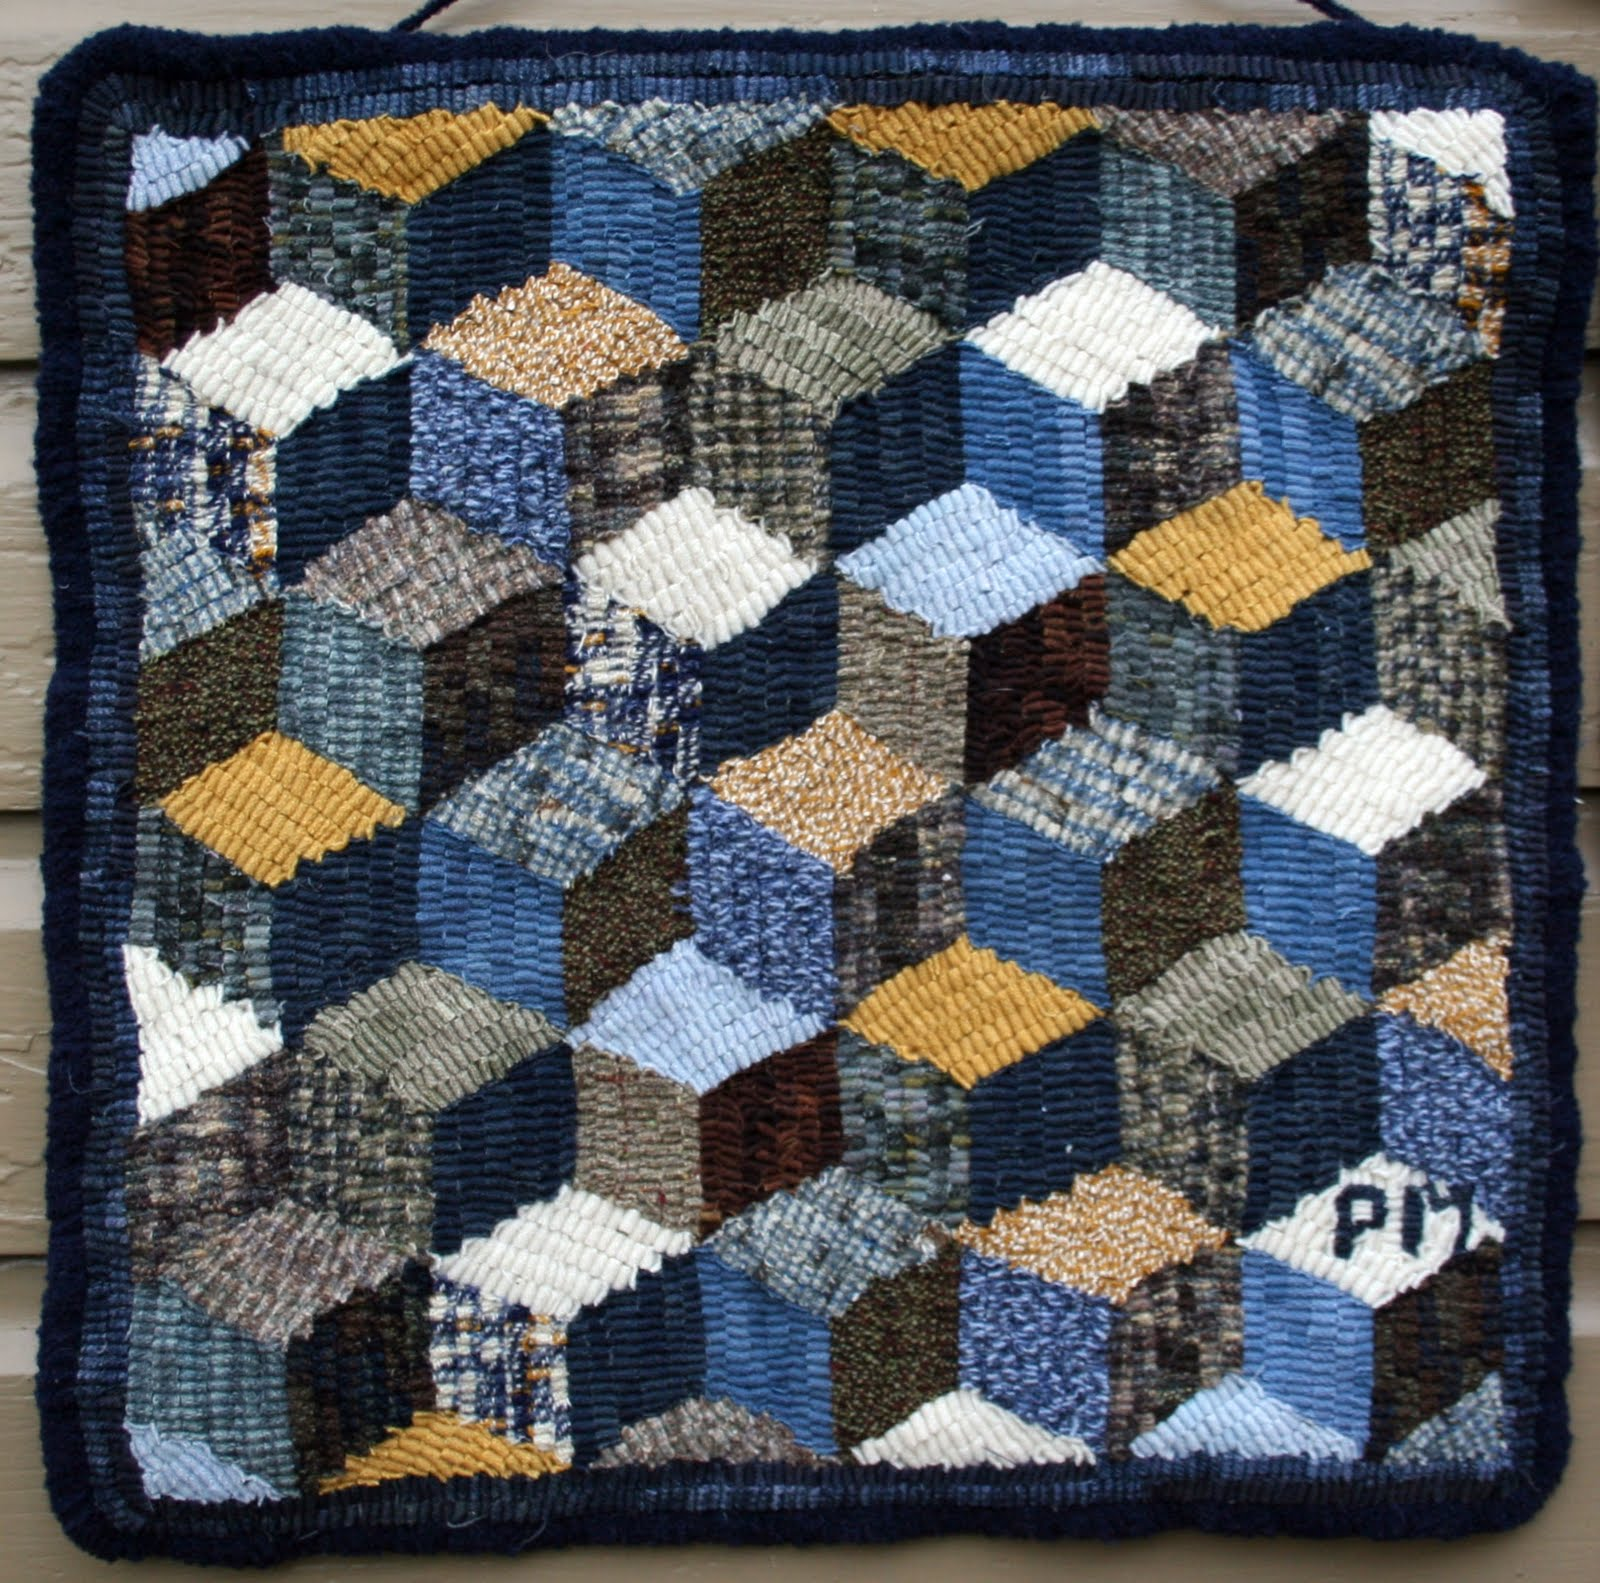 RagingWool: The Quilt Rugs